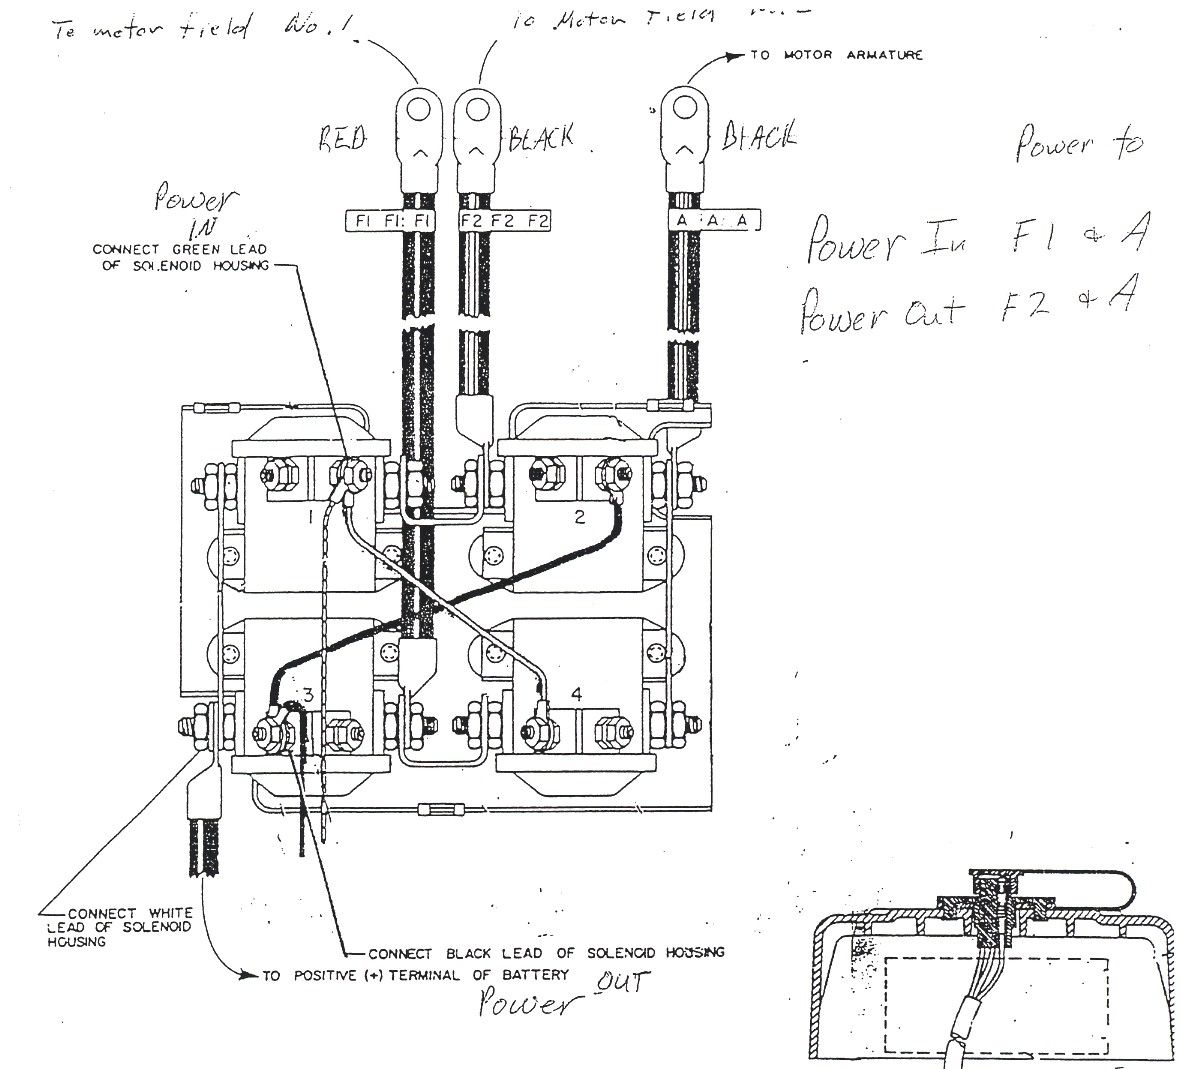 C Warn Atv Winch Solenoid Wiring Diagram